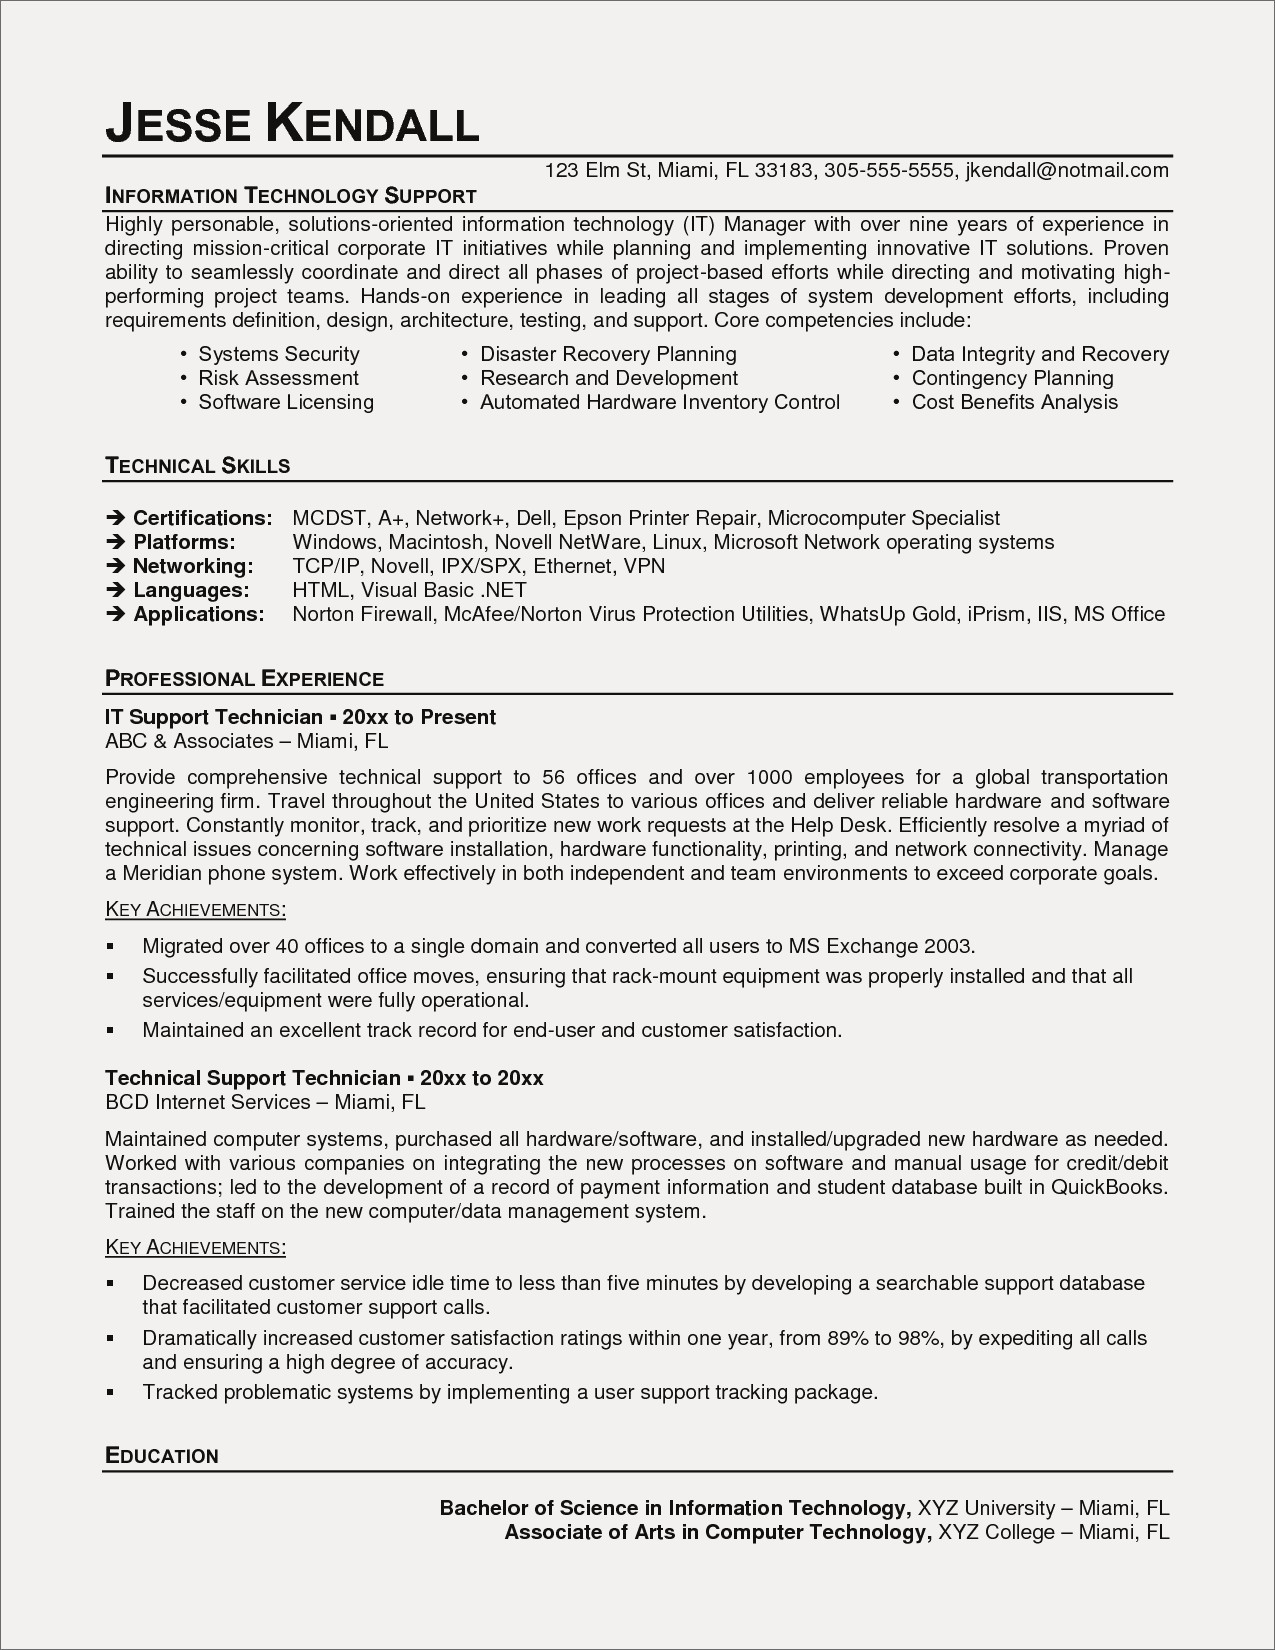 auto mechanic resume template Collection-Students Resume Samples Valid Auto Mechanic Resume American Resume Sample New Student Resume 0d 9-l